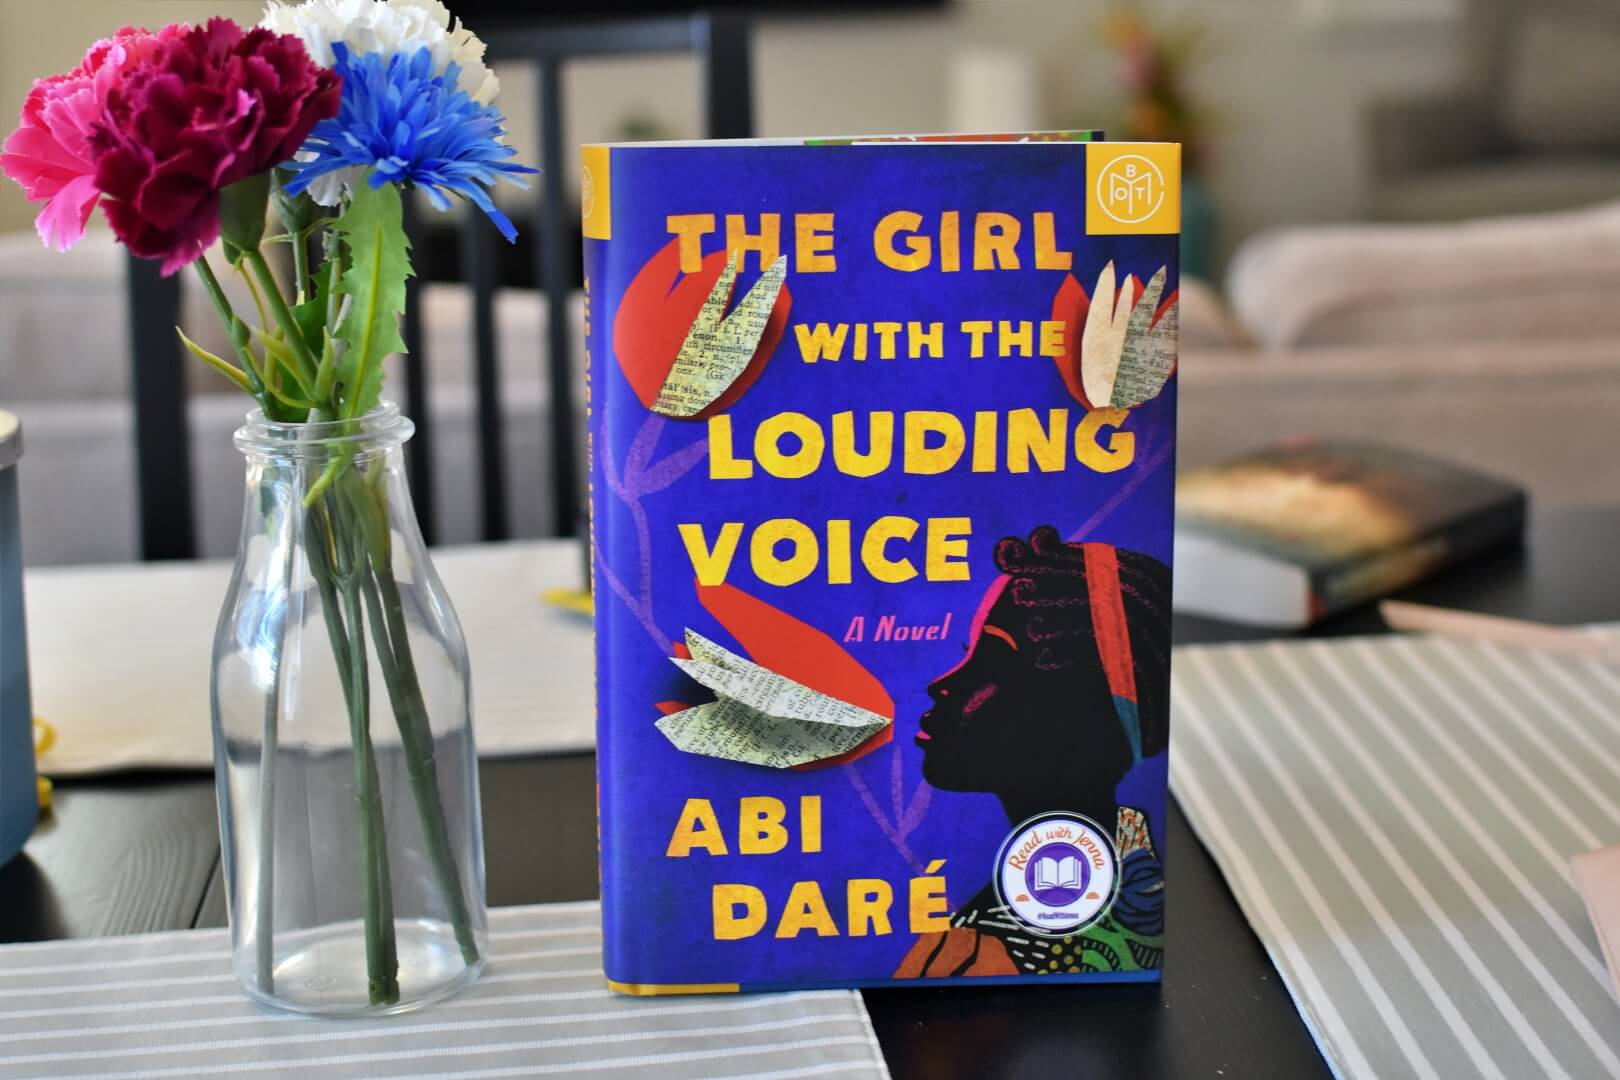 the girl with the louding voice - abi dare